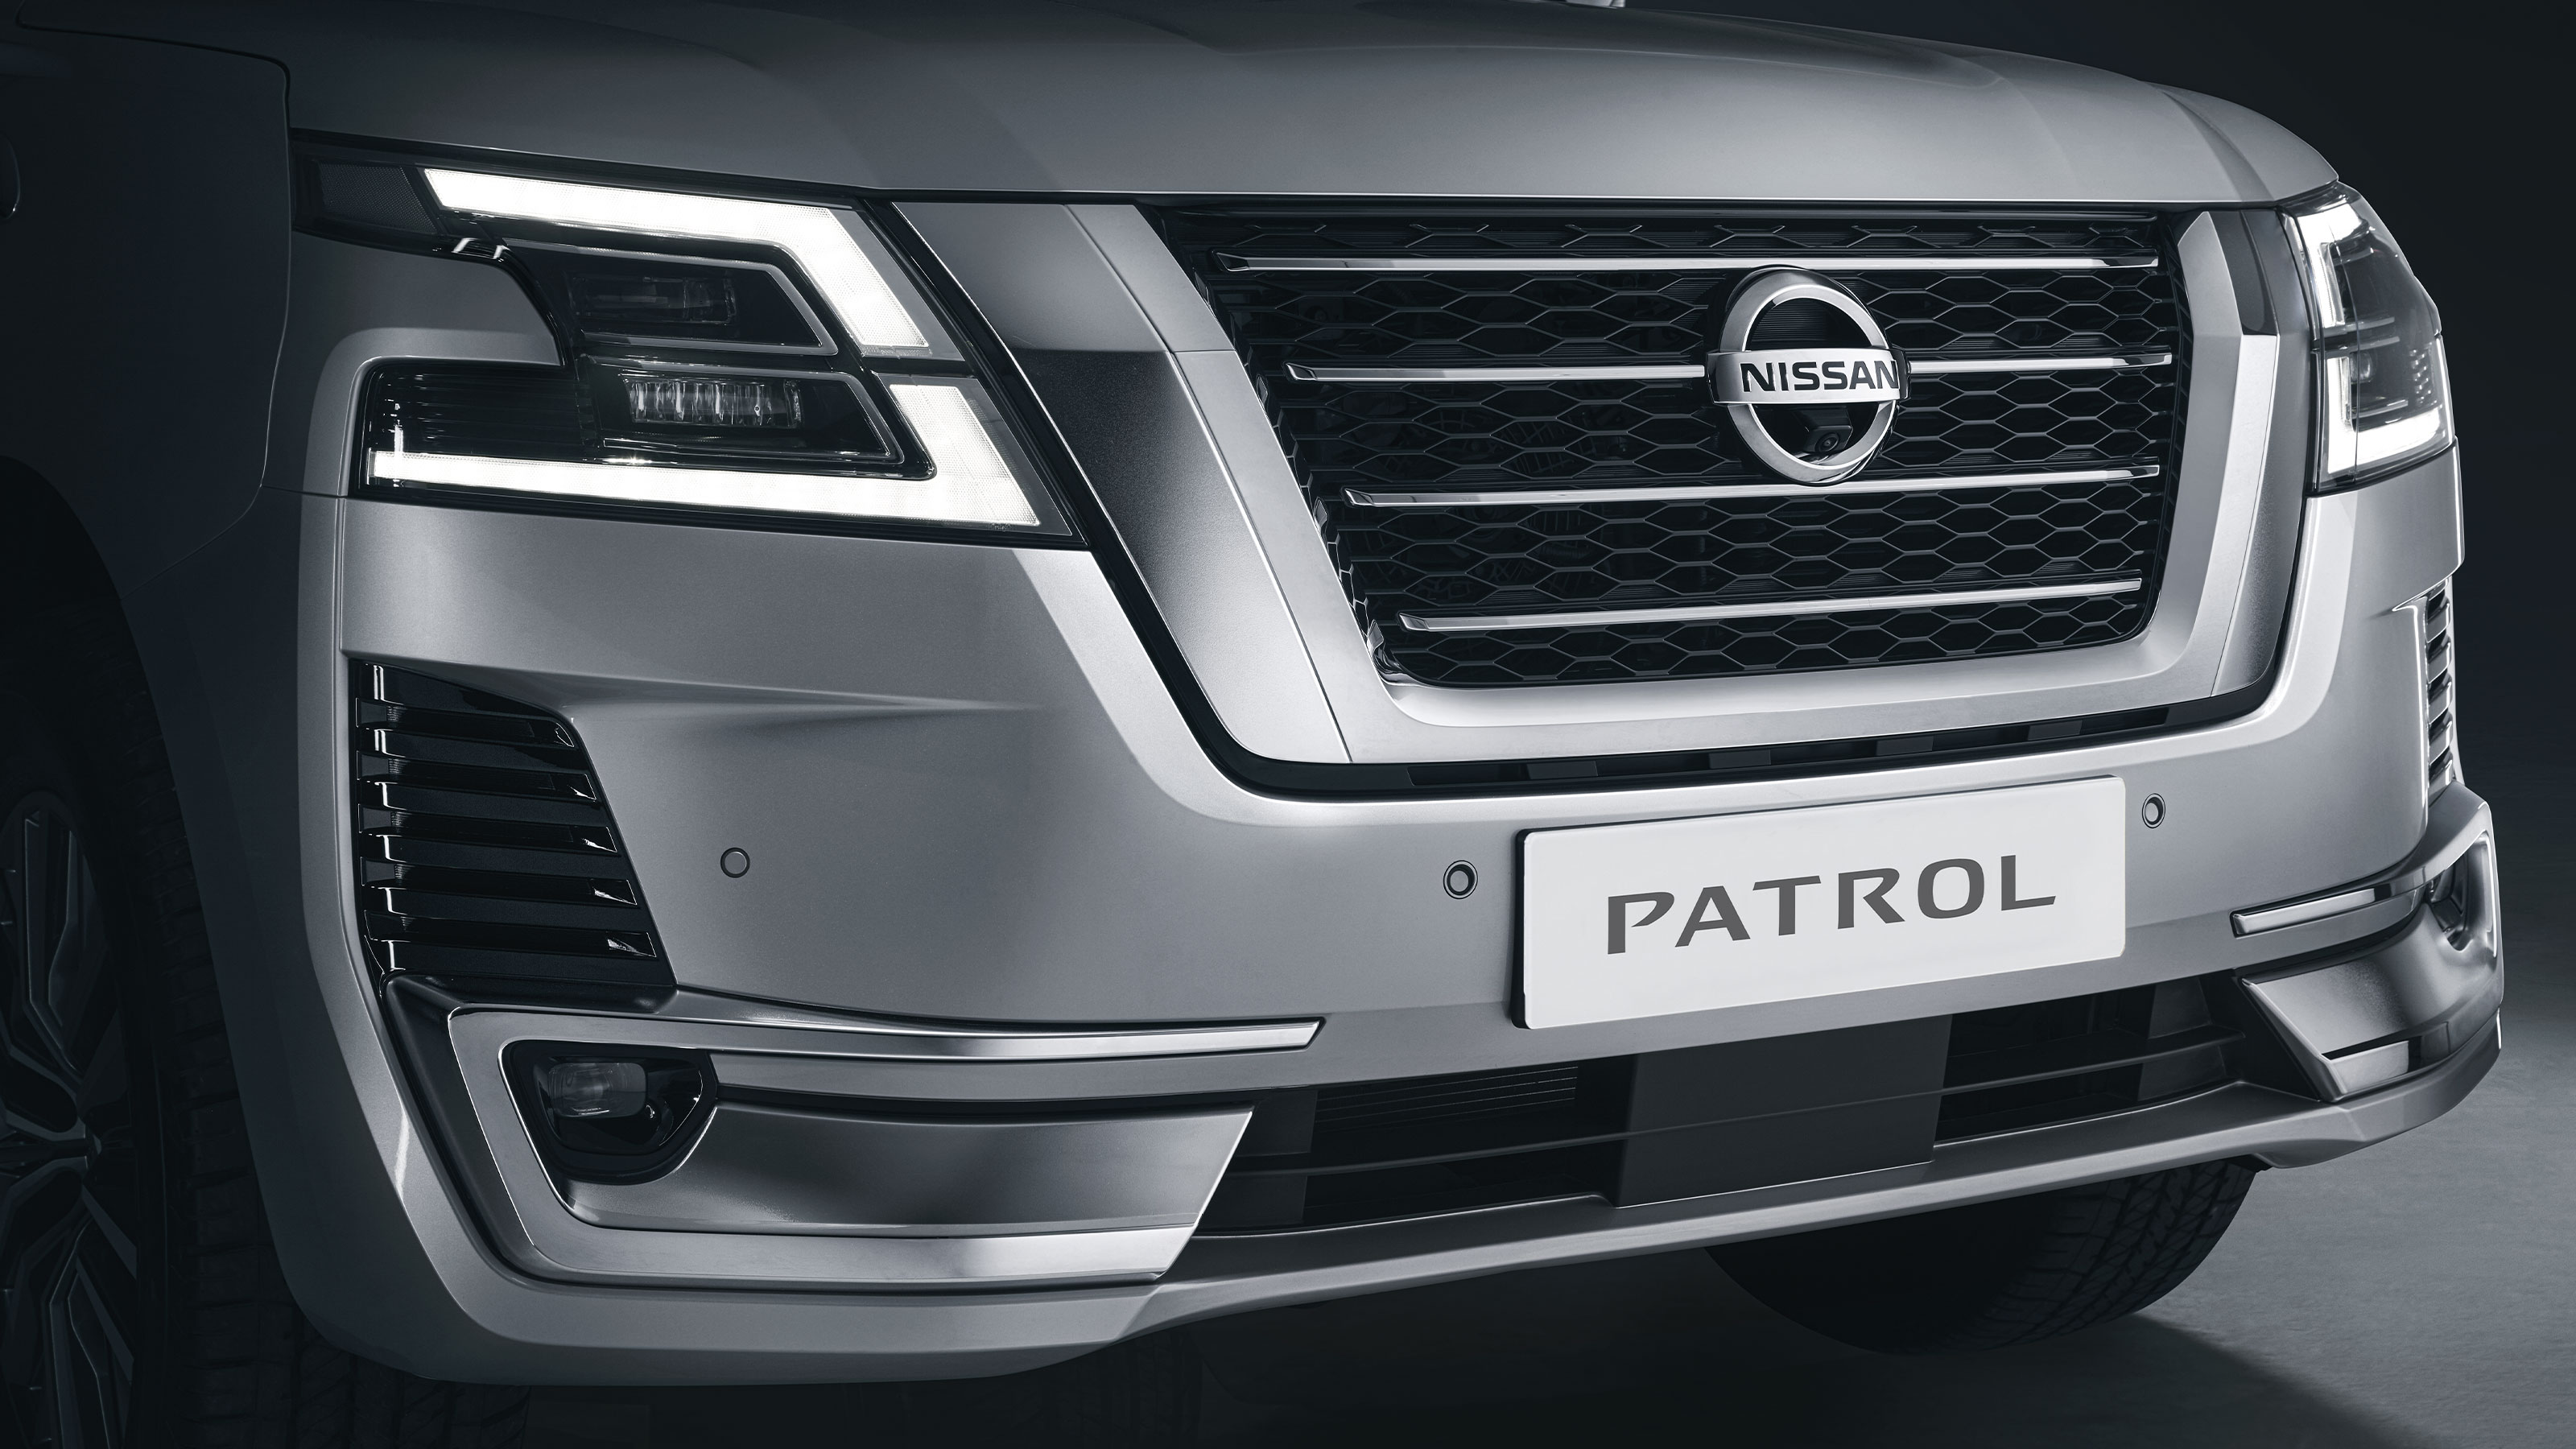 2020 NISSAN PATROL front grill close up